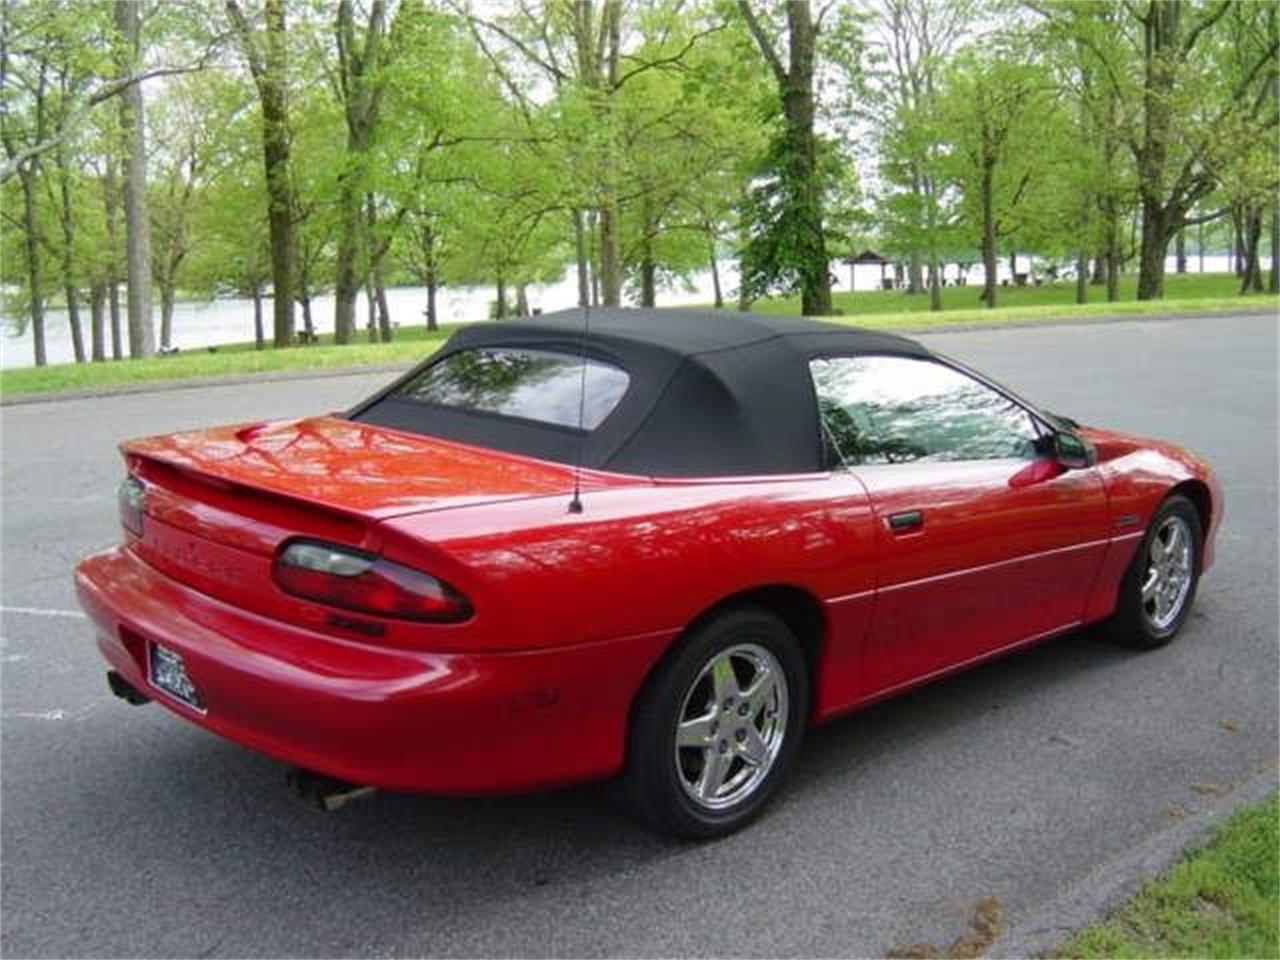 Large Picture of '94 Camaro located in Tennessee - $7,950.00 - PZIL